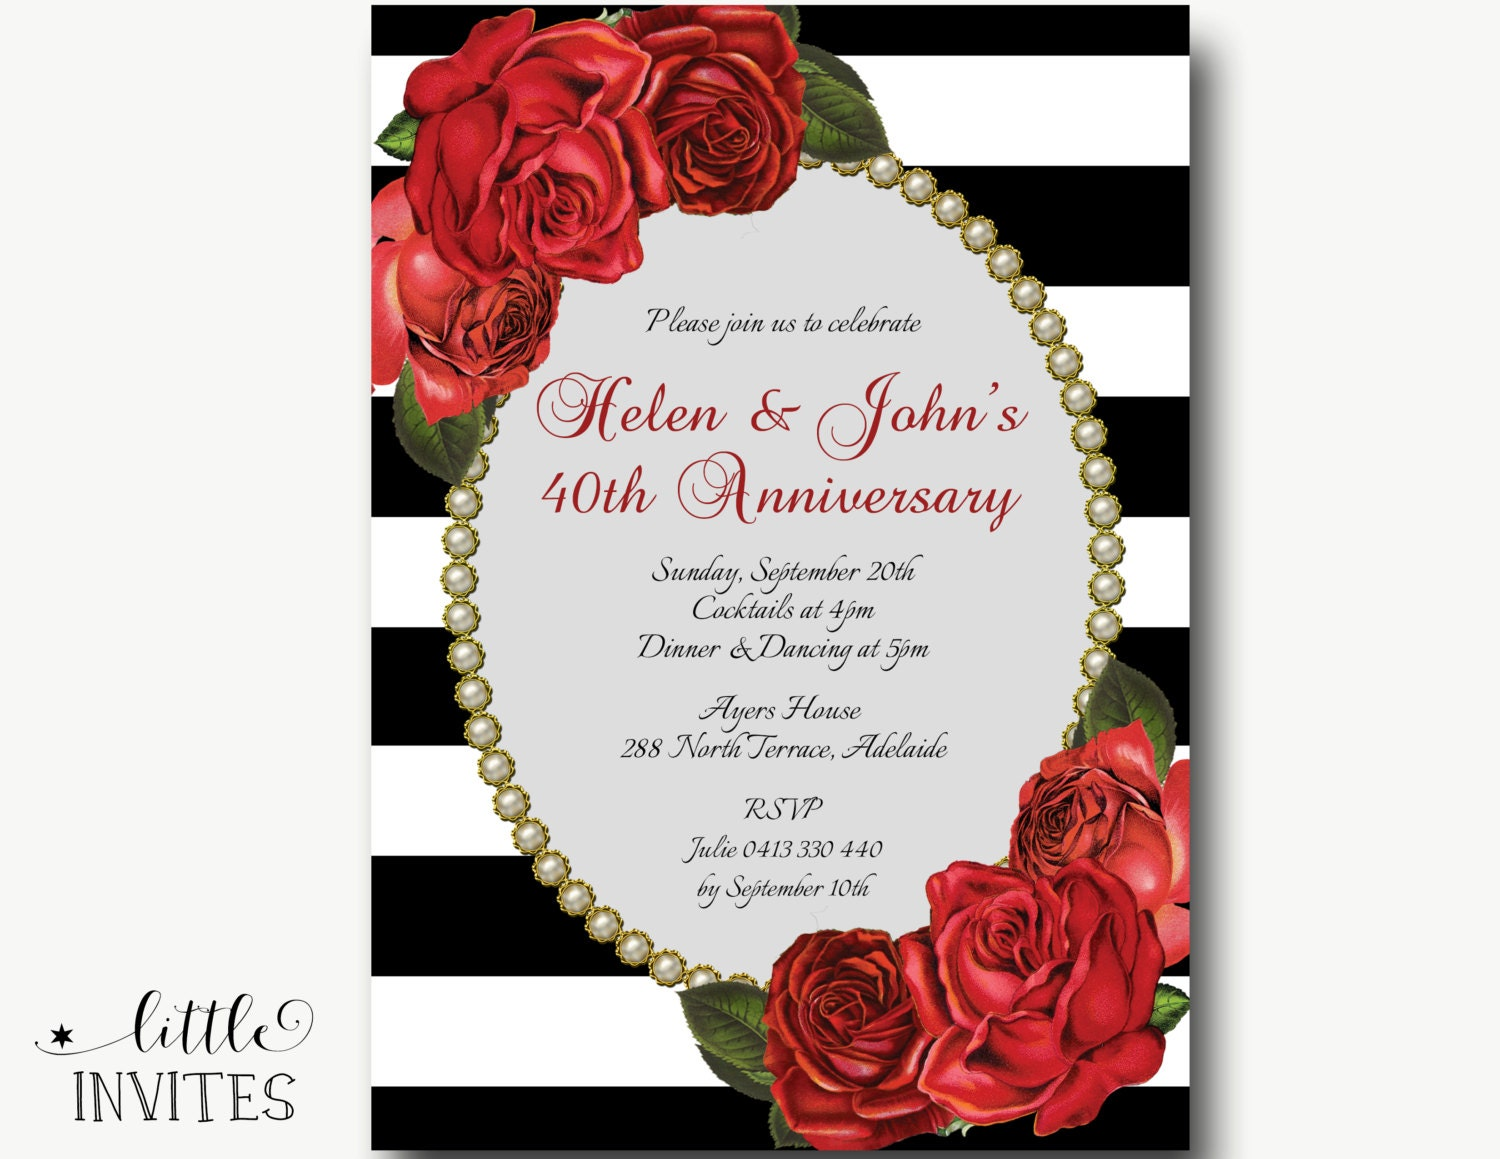 Perfect Irish Passport Wedding Invitations Image - Invitations and ...